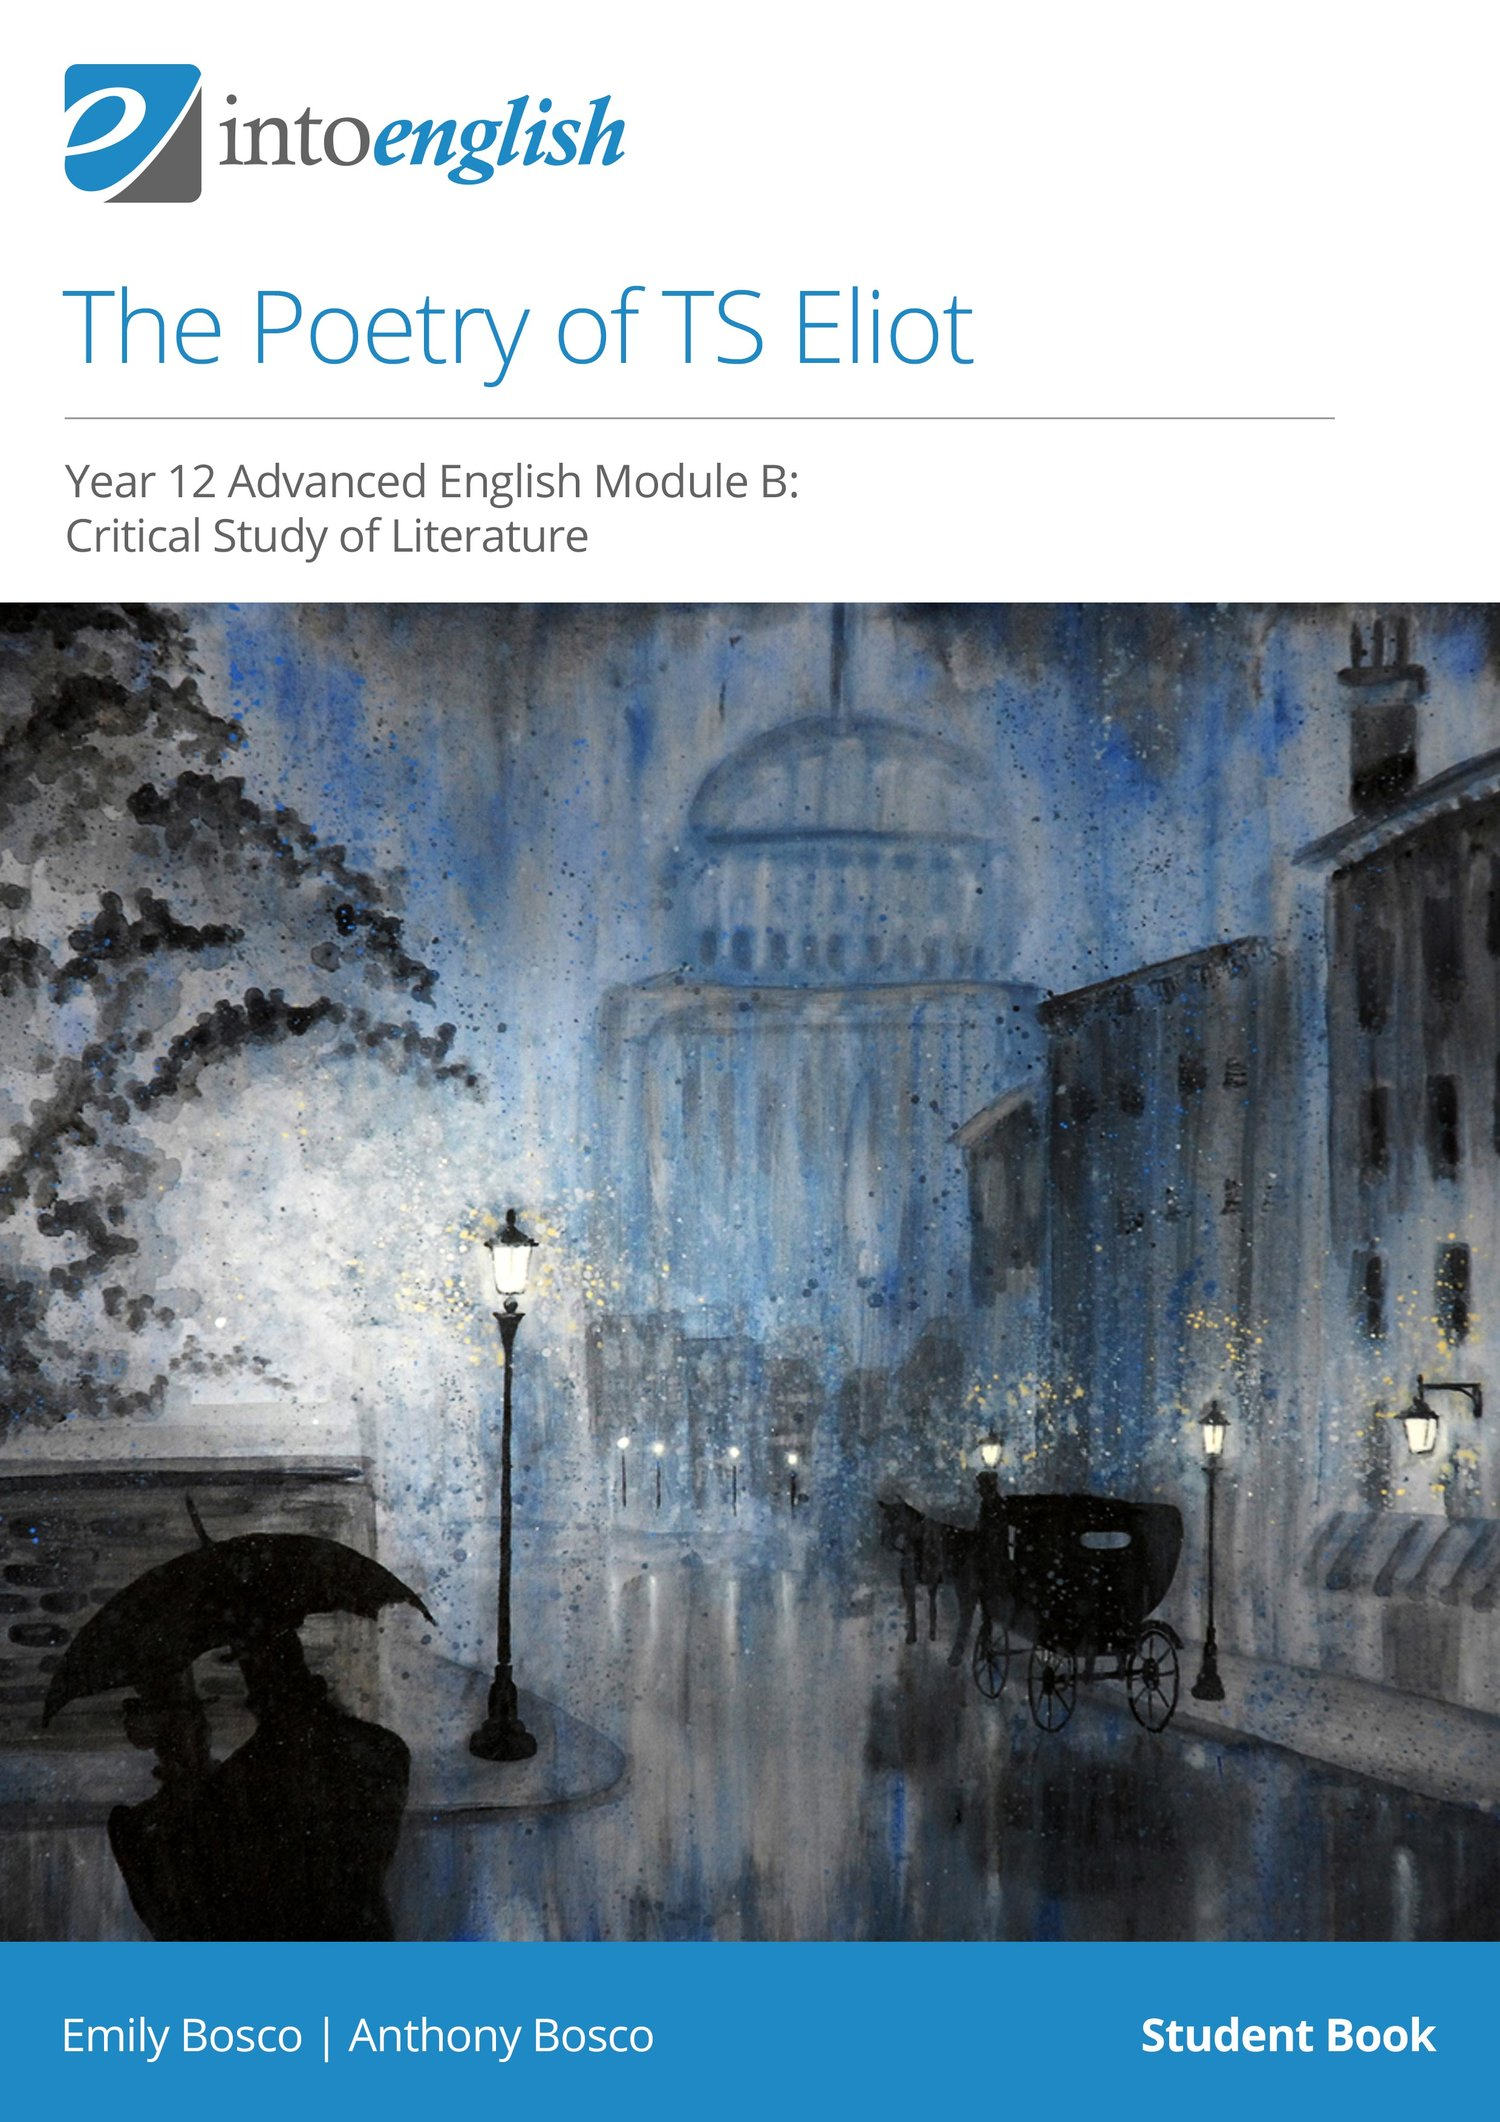 The Poetry of TS Eliot Student eBook — Into English